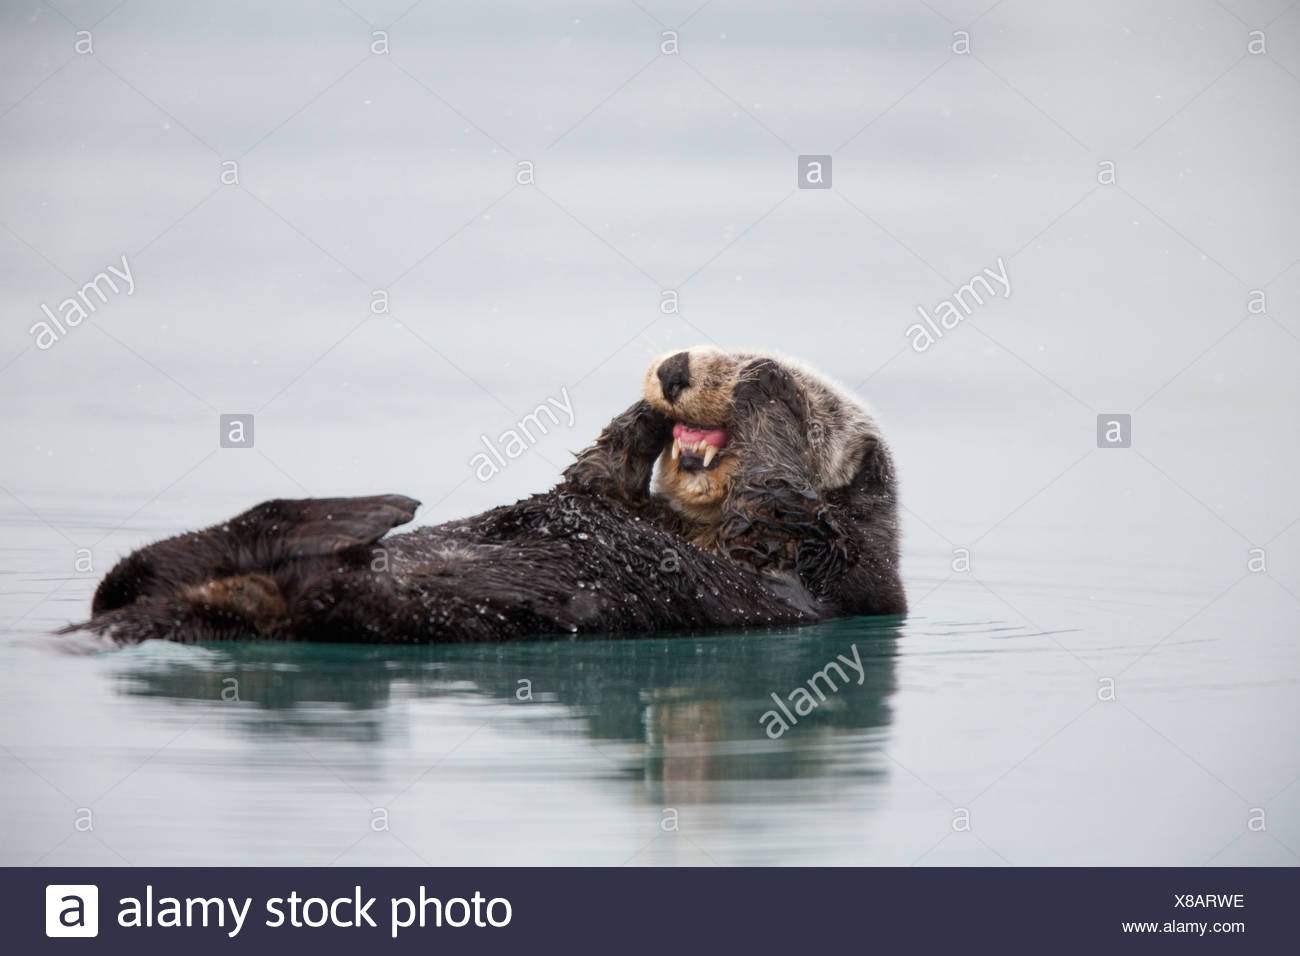 Sea otter floating on back and rubbing cheeks with paws exposing teeth, Prince William Sound, Southcentral Alaska, Winter - Stock Image